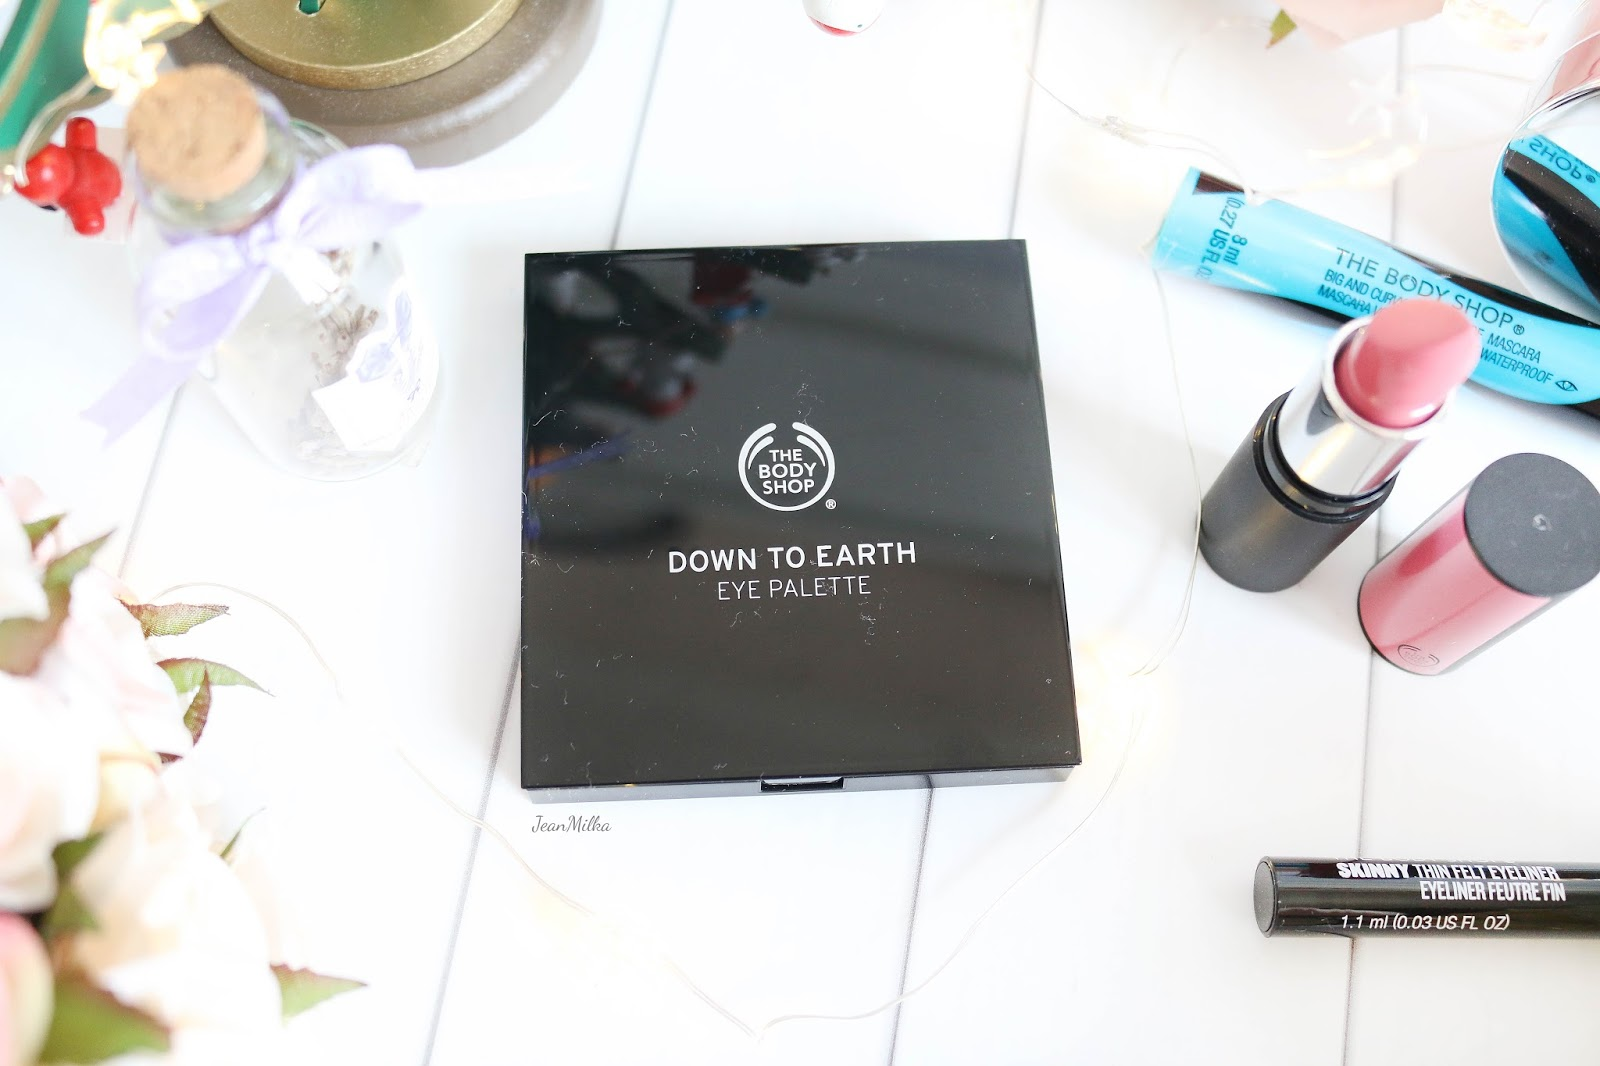 the body shop, body shop, body shop indonesia, the body shop indonesia, makeup natal, makeup, the body shop makeup, makeup collection, christmas makeup, the body shop makeup review, eye makeup, eyeshadow, the body shop down to earth eye palette, eye palette, eyeshadow palette